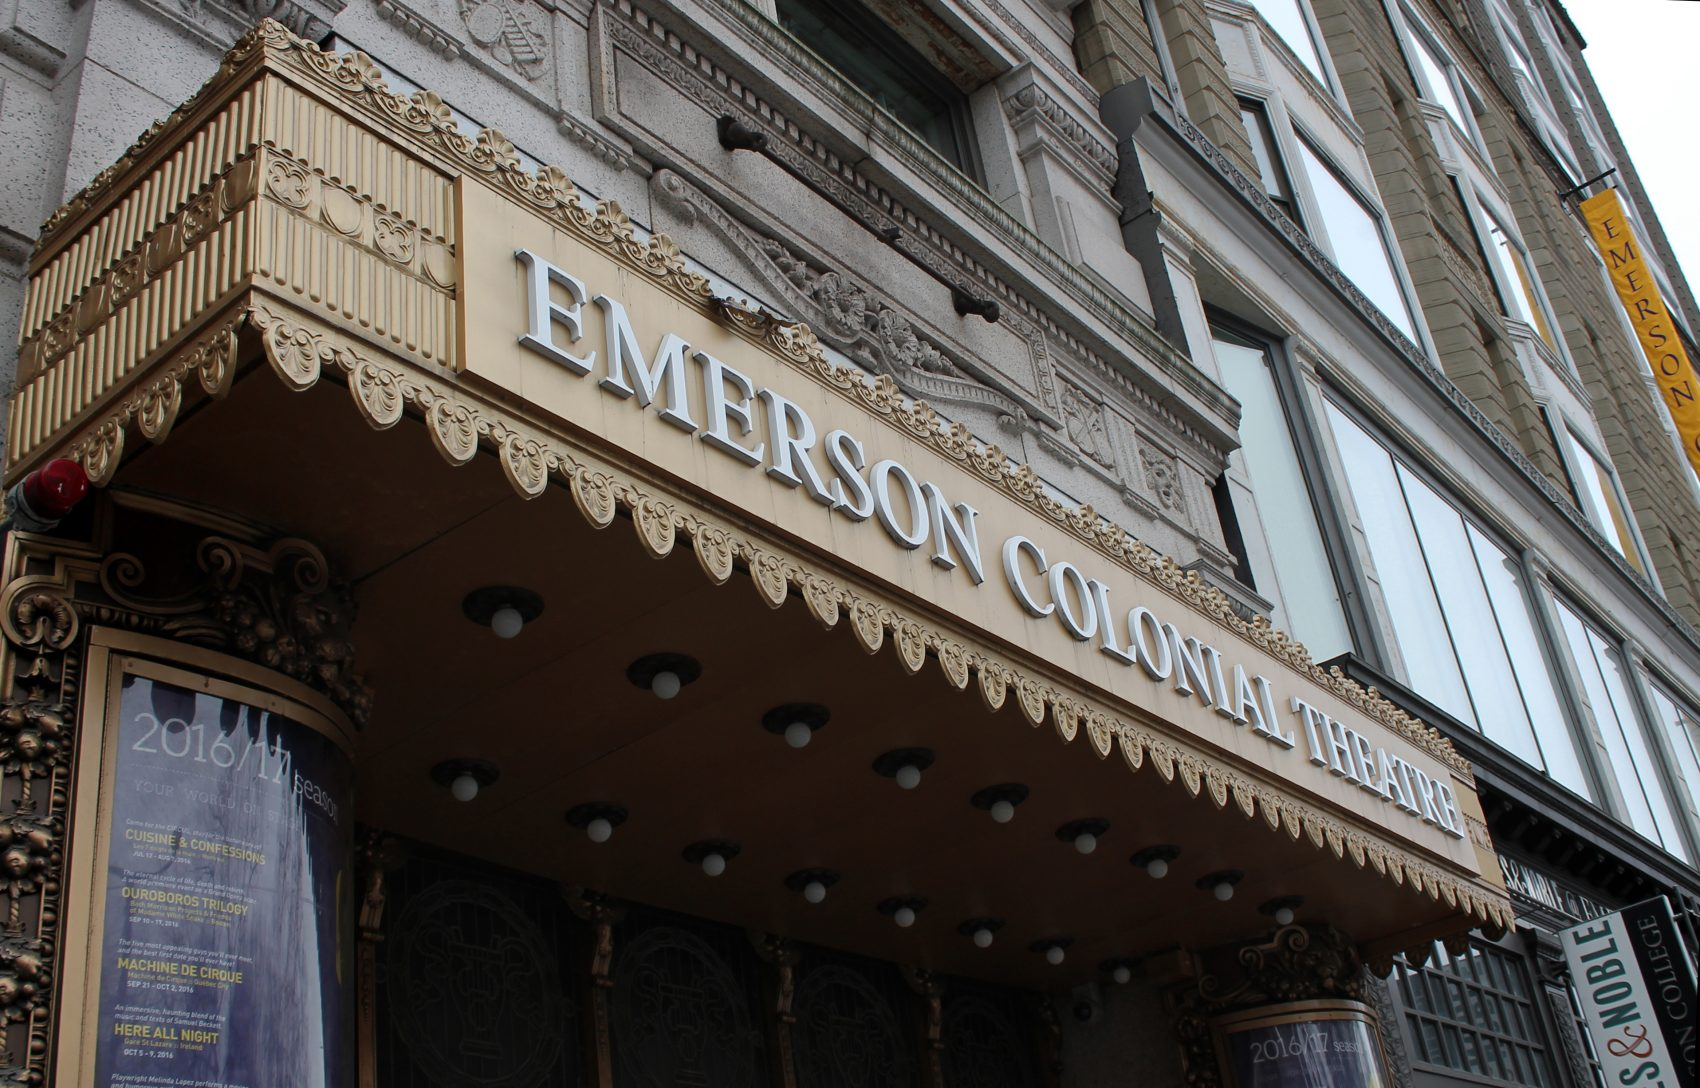 The 1,700 seat Colonial Theatre, owned by Emerson College, shut its doors in 2015. (Amy Gorel/WBUR)